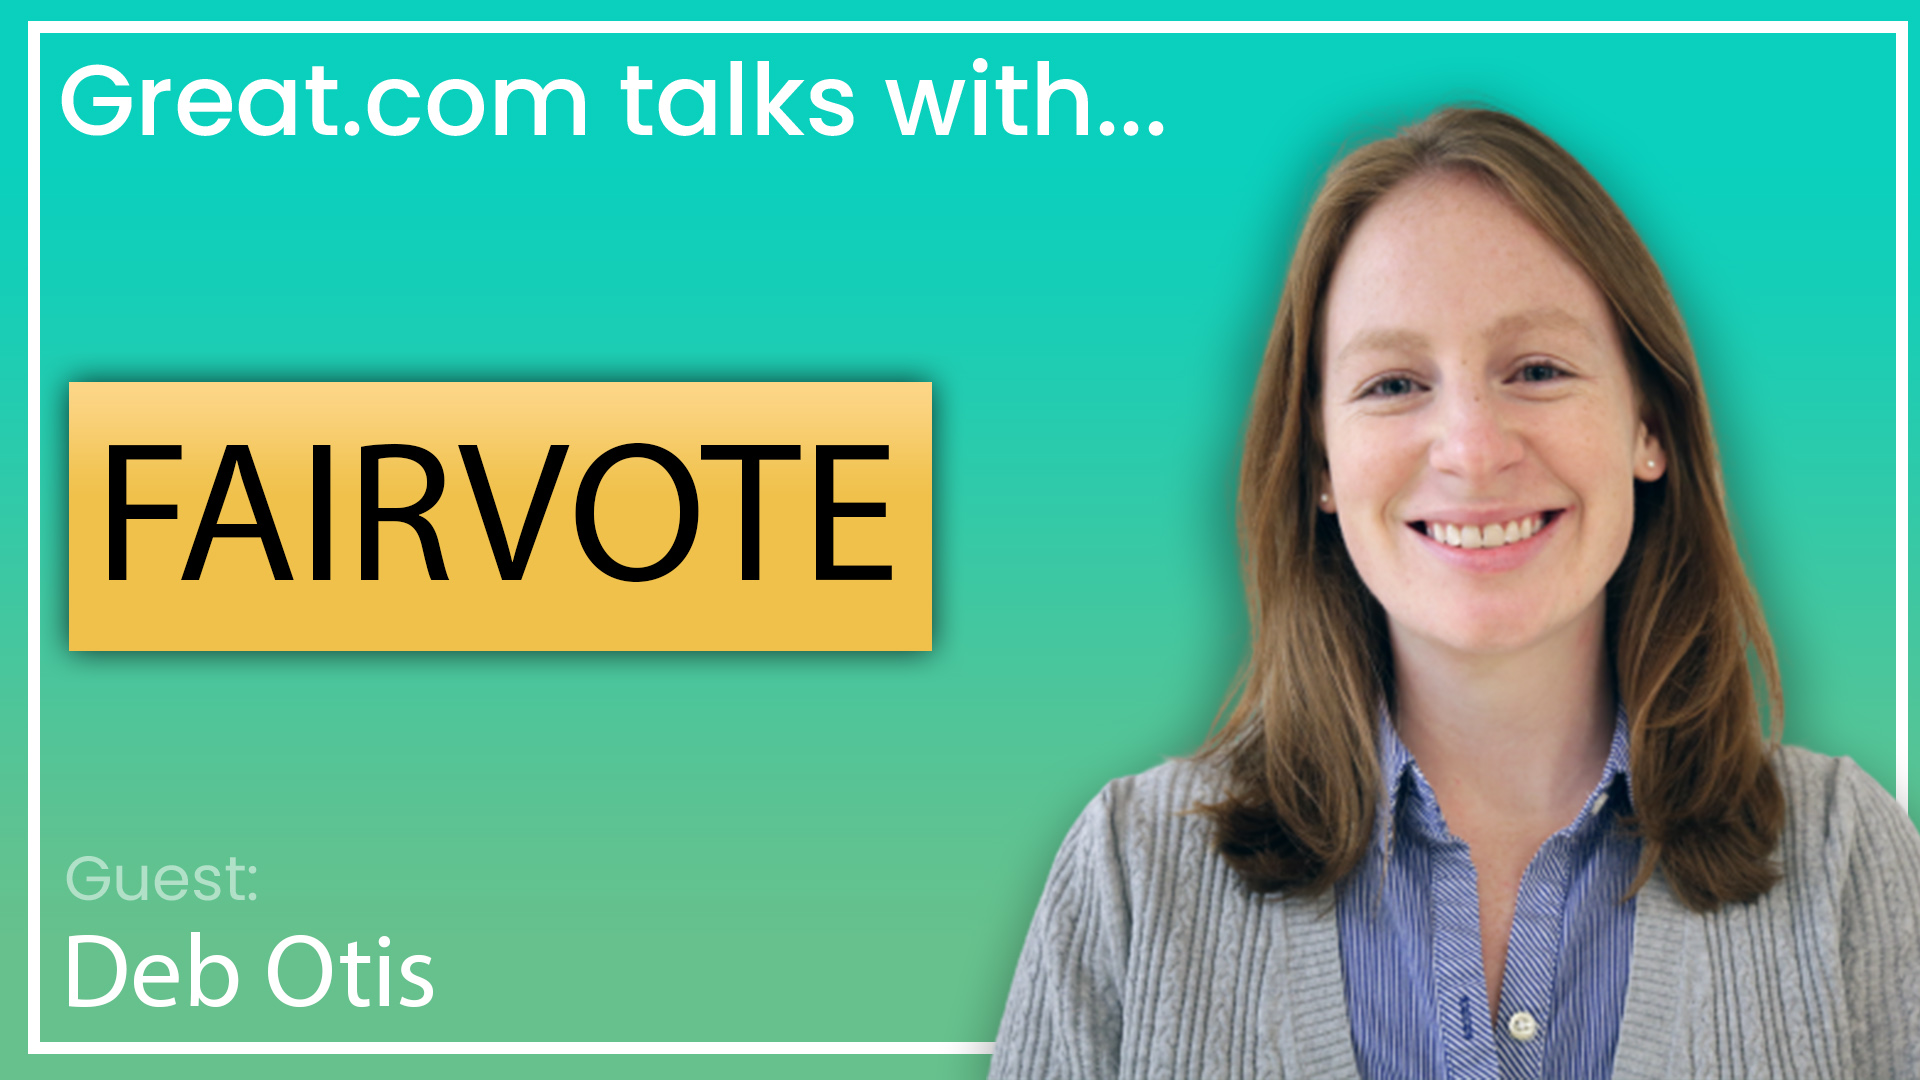 Great.com Interviews Fairvote About What's Wrong With Our Voting System And How We Can Change It